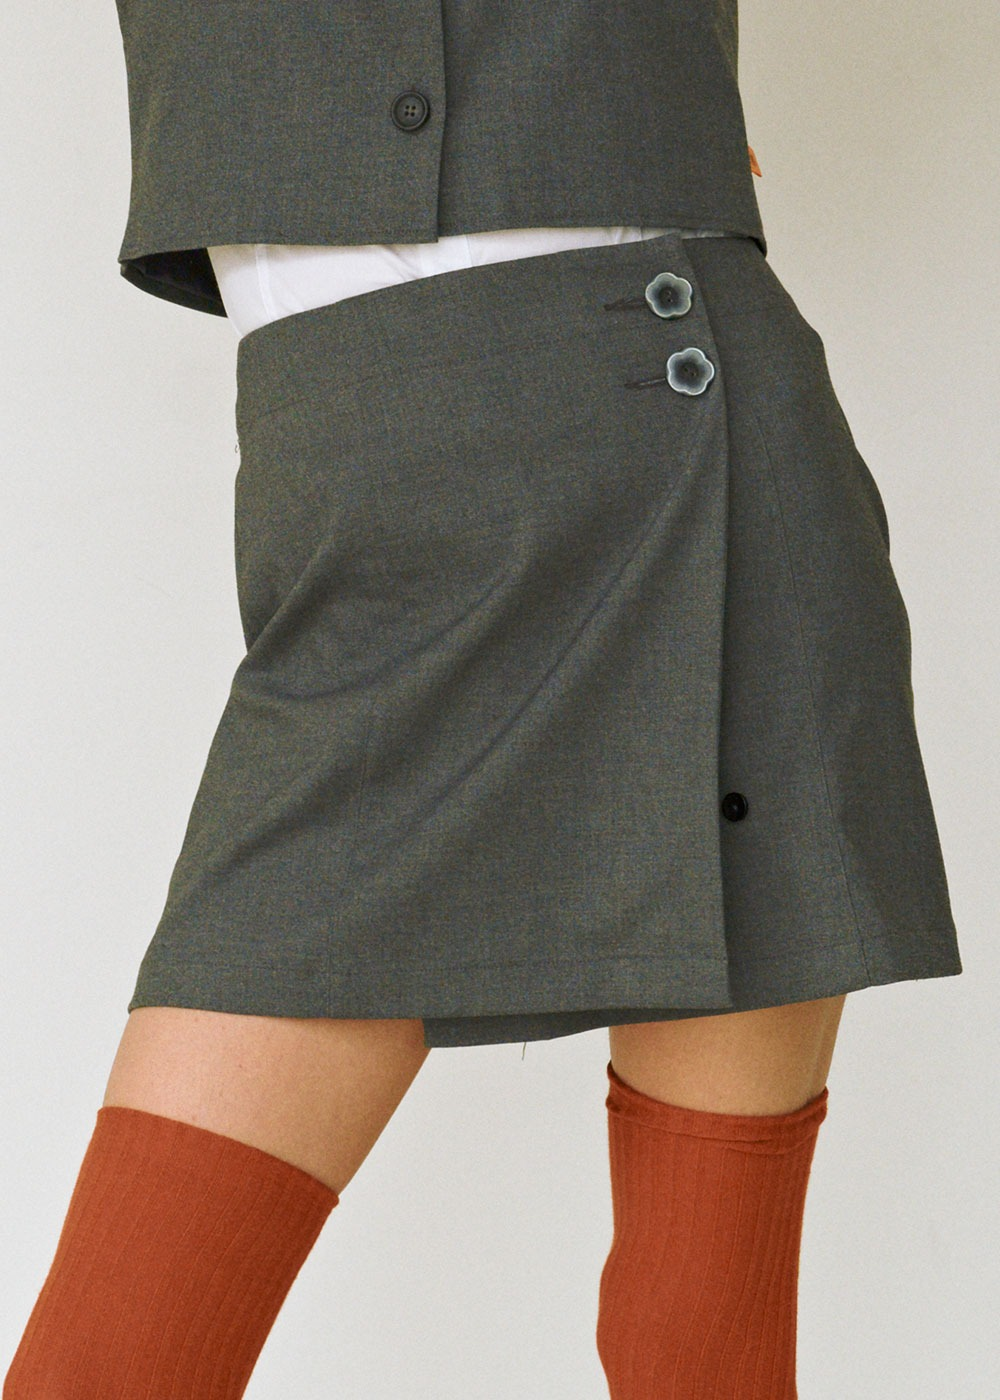 Pleats Wrap Skirt [GREY]Pleats Wrap Skirt [GREY]자체브랜드